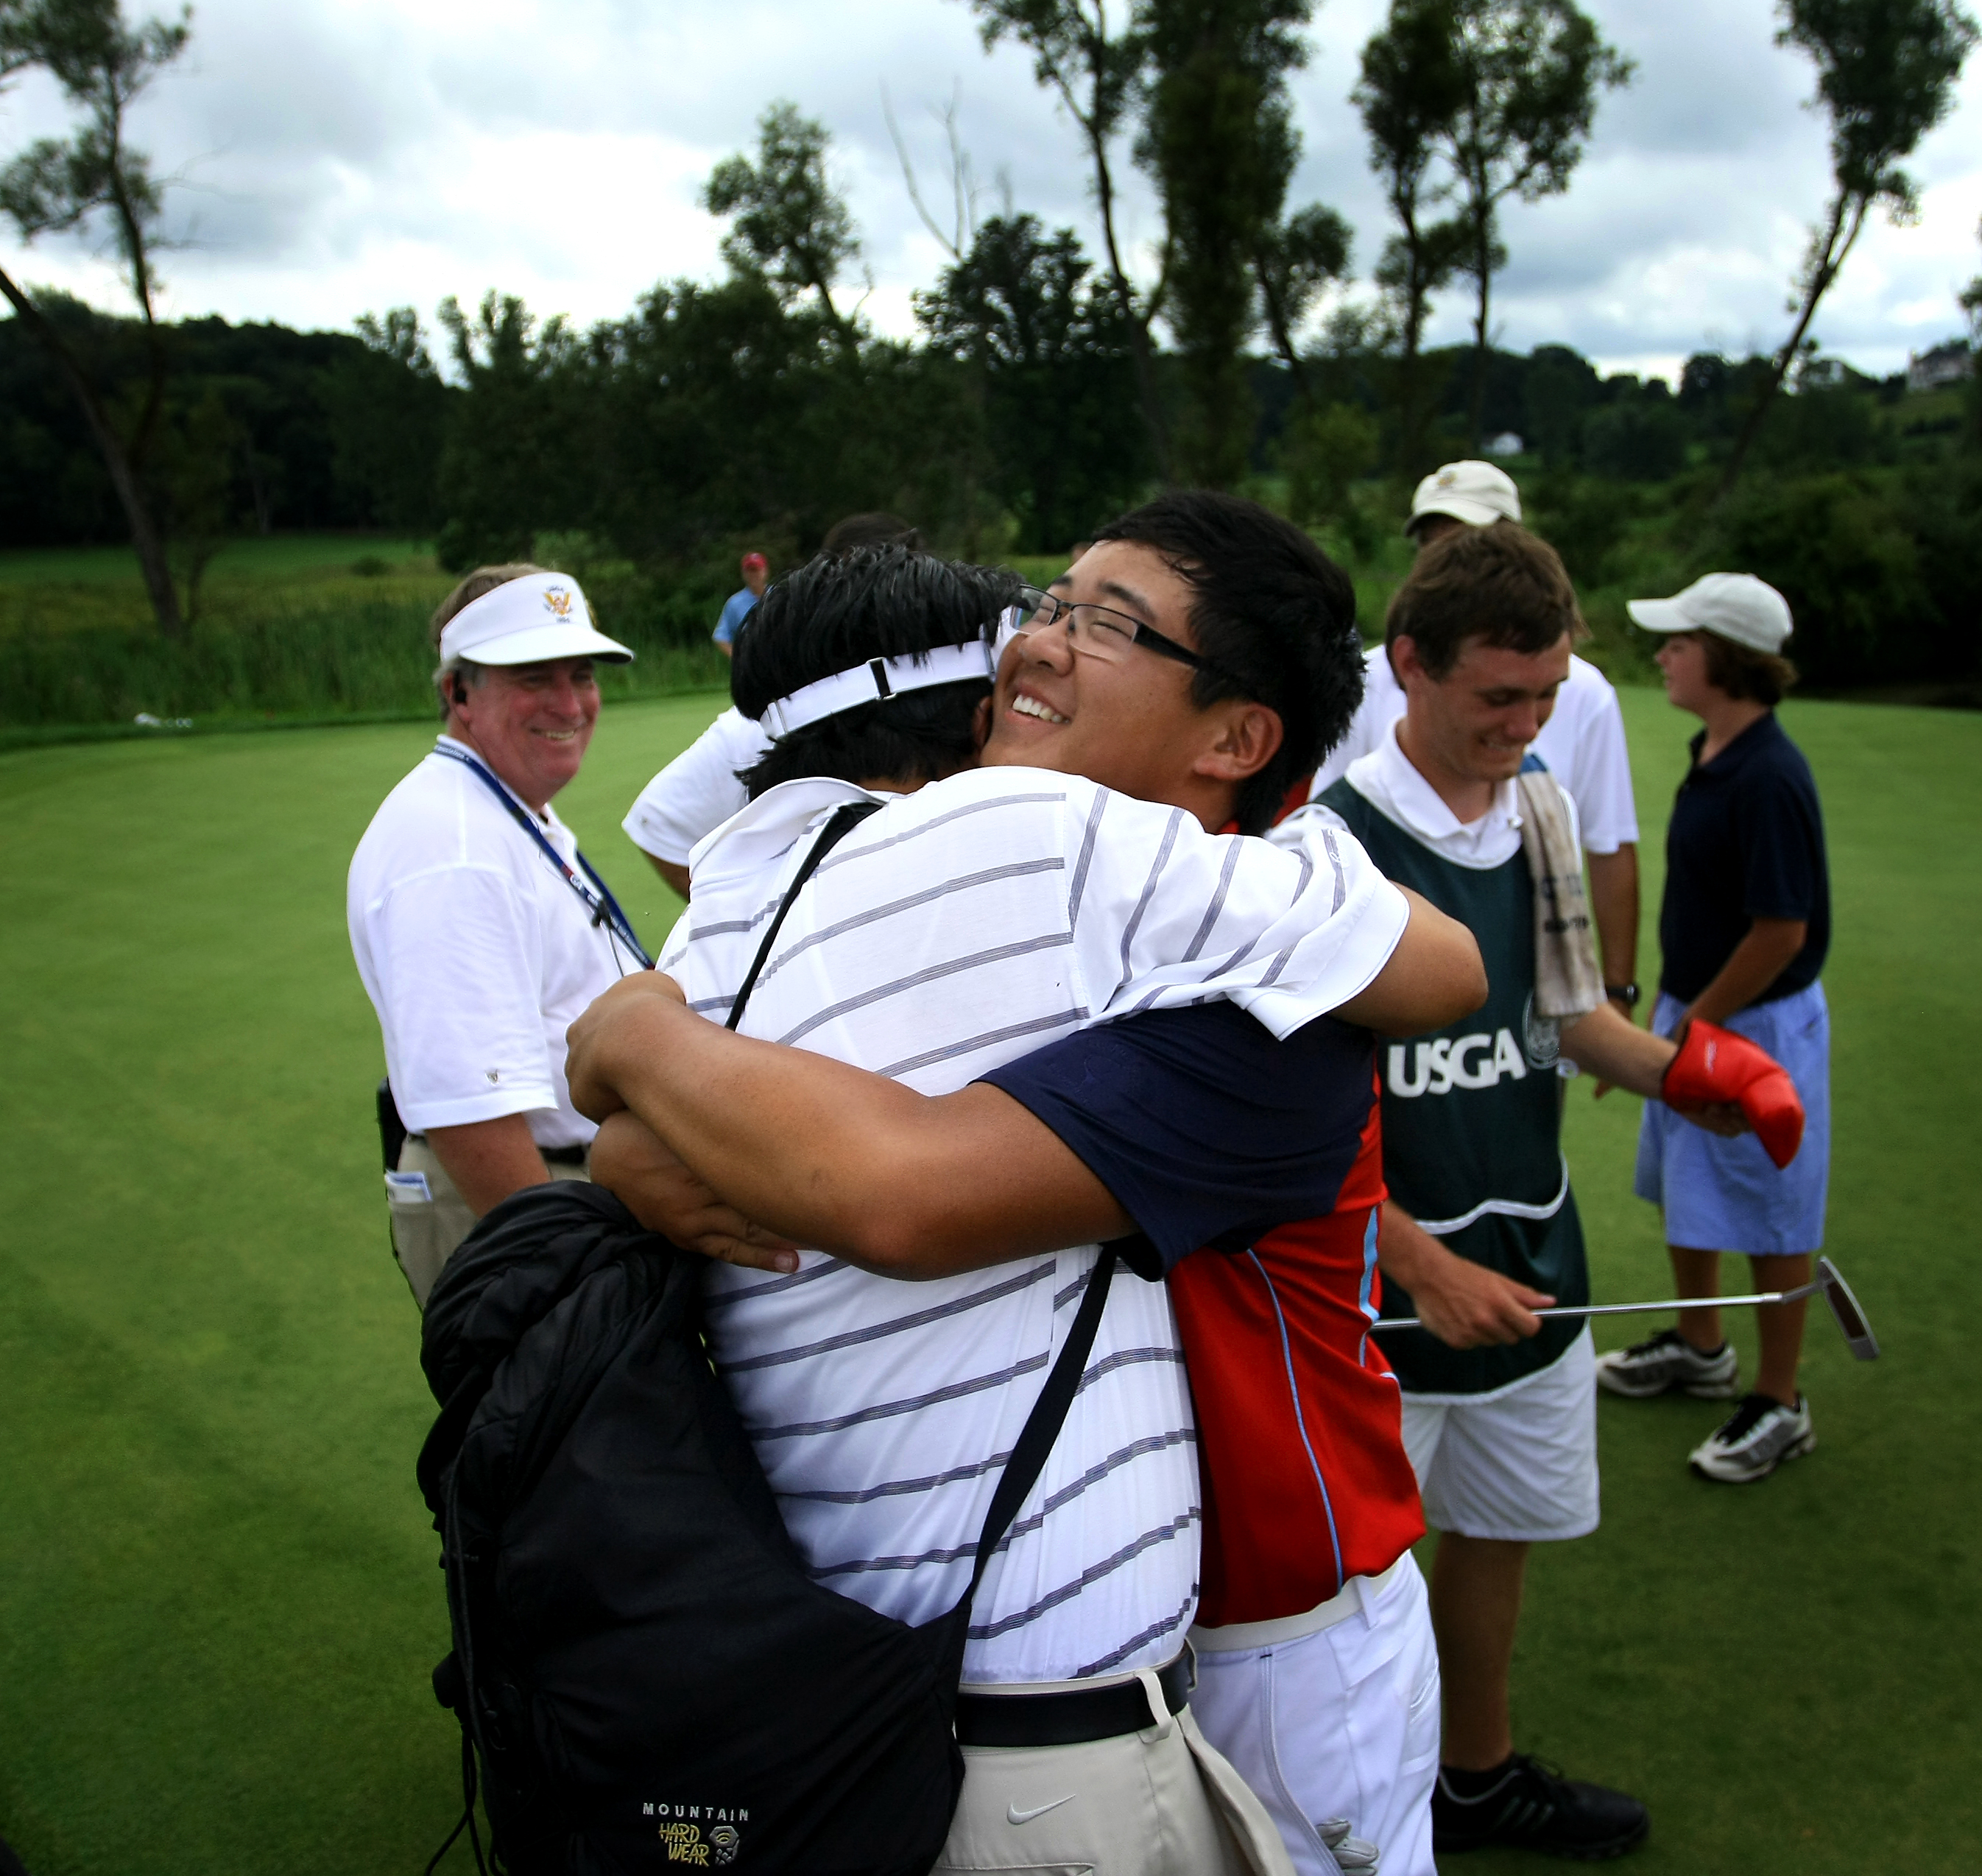 Jim Liu gets a hug from his dad, Yiming Liu, after he defeated Justin Thomas, 4 and 2, in the finals of the U.S. Junior Amateur.